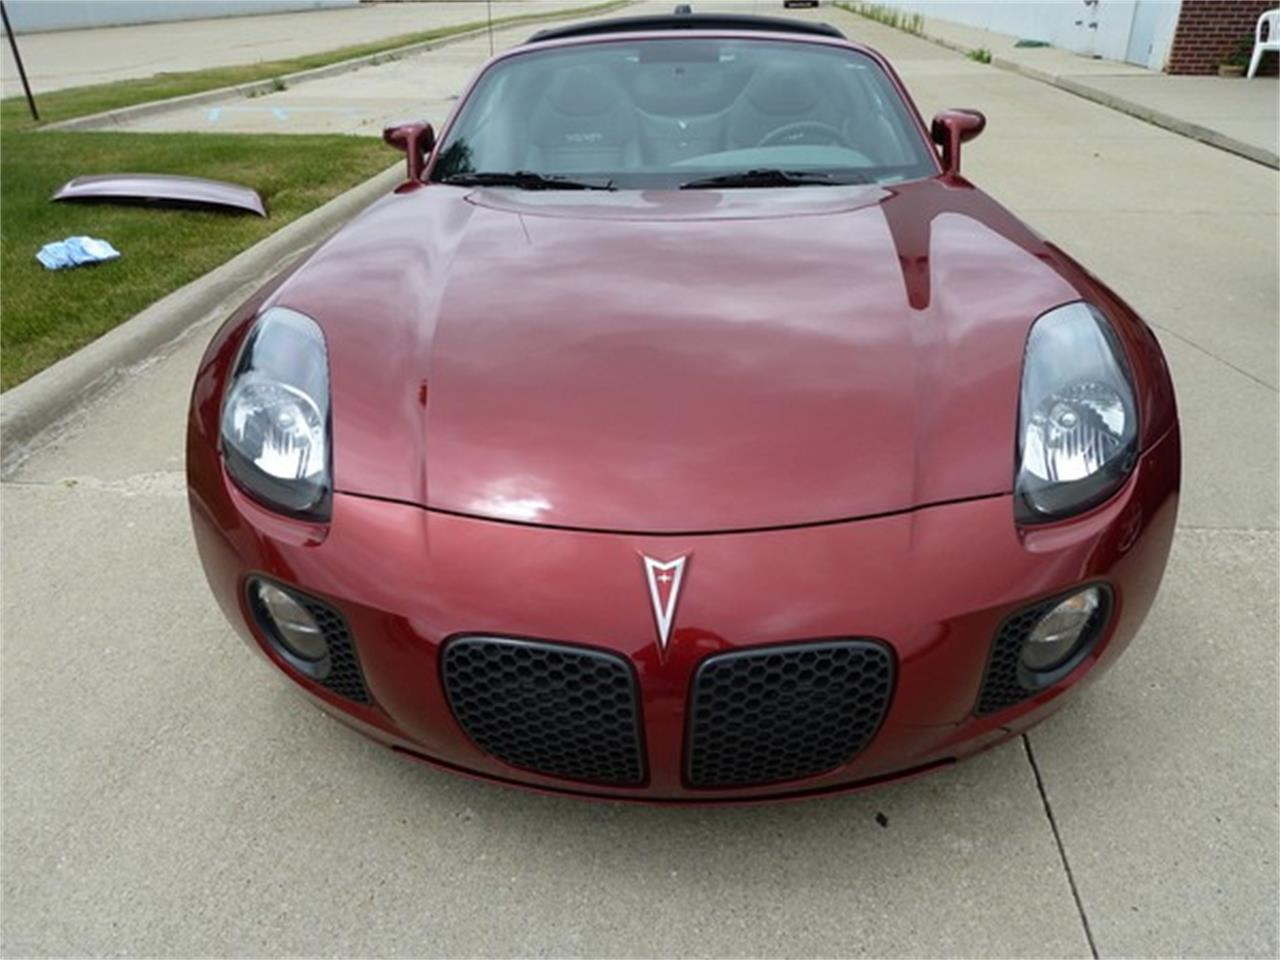 2010 Pontiac Solstice (CC-1319511) for sale in Macomb, Michigan